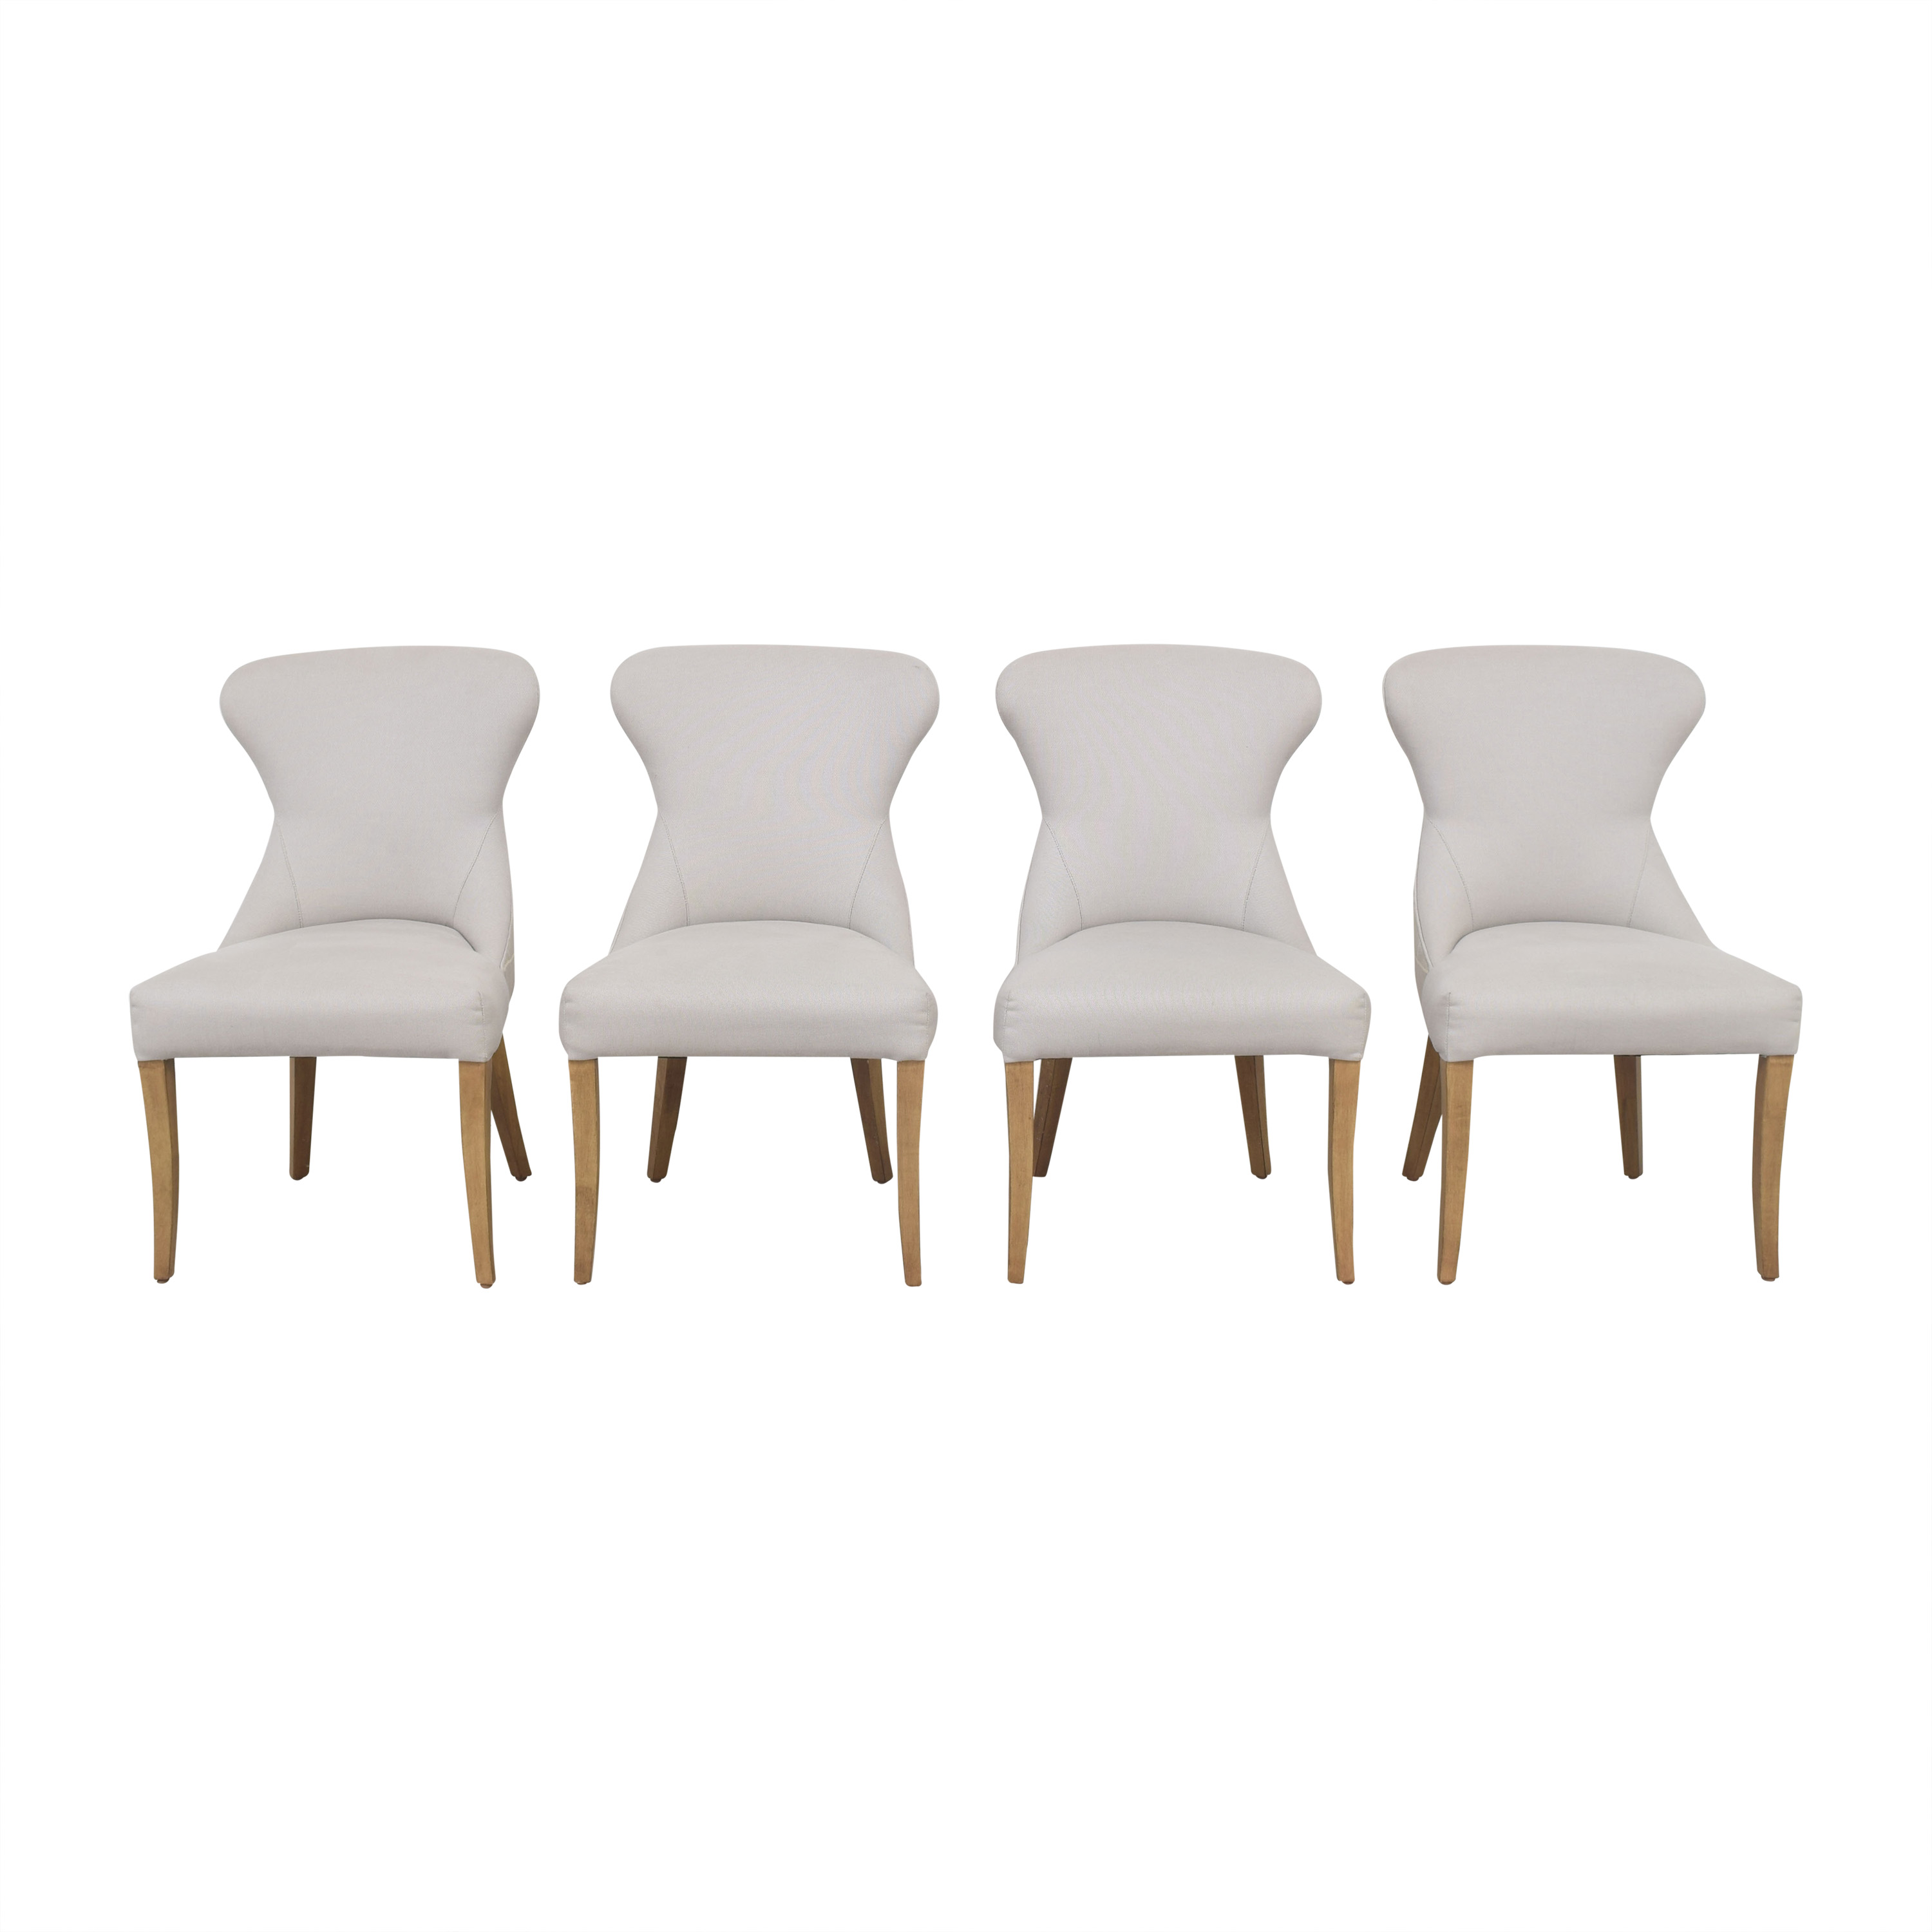 Lillian August Lillian August Couture Upholstered Dining Chairs Dining Chairs